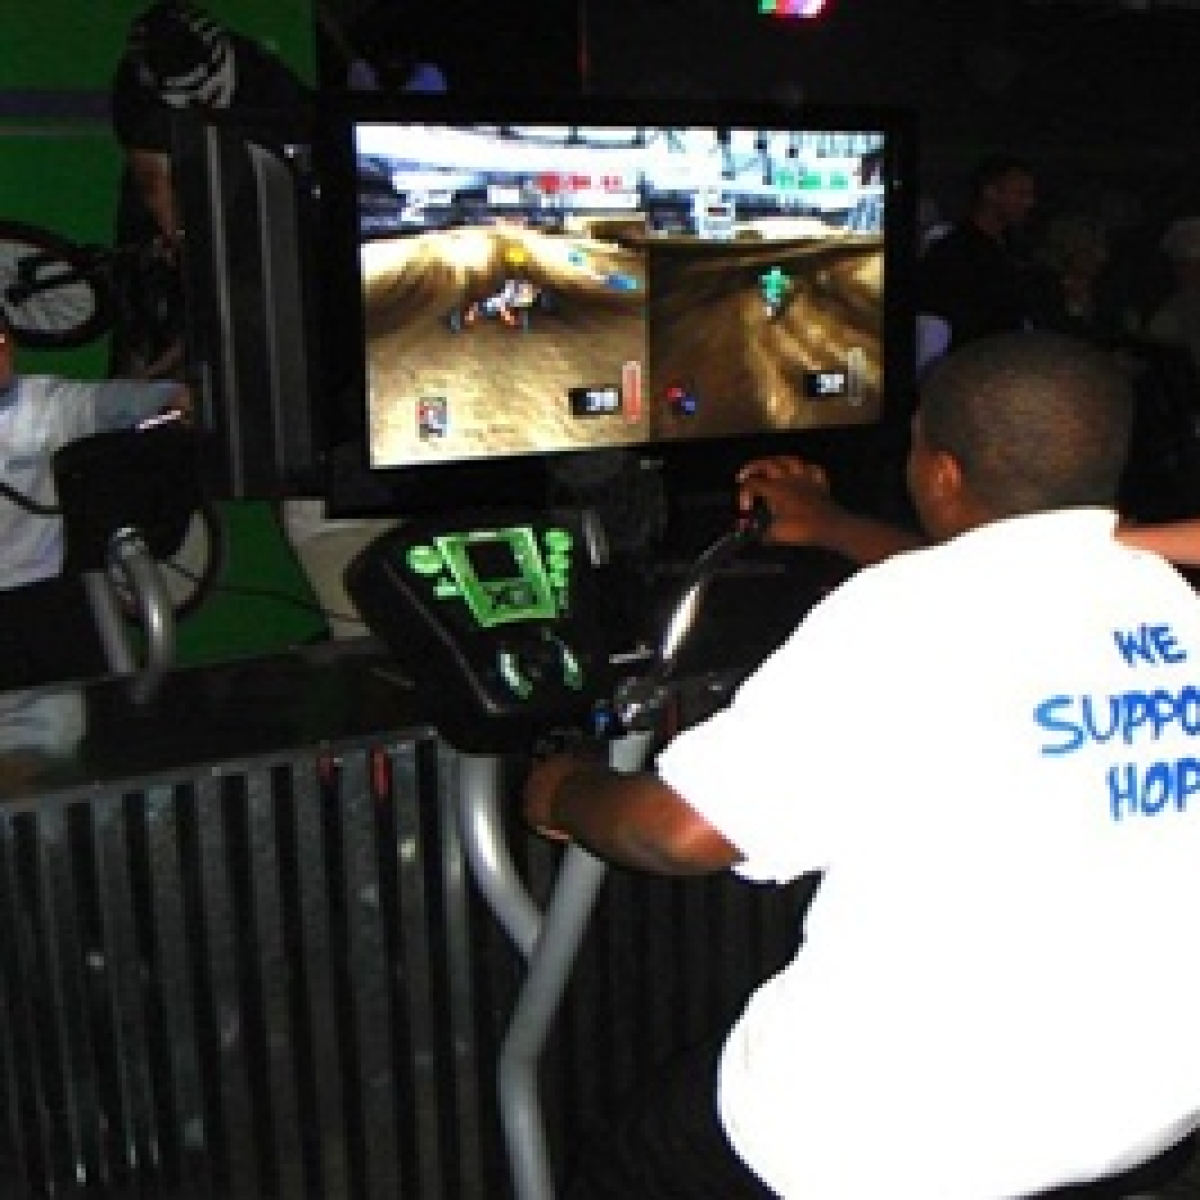 Like footballers, Esports gamers too suffer stress